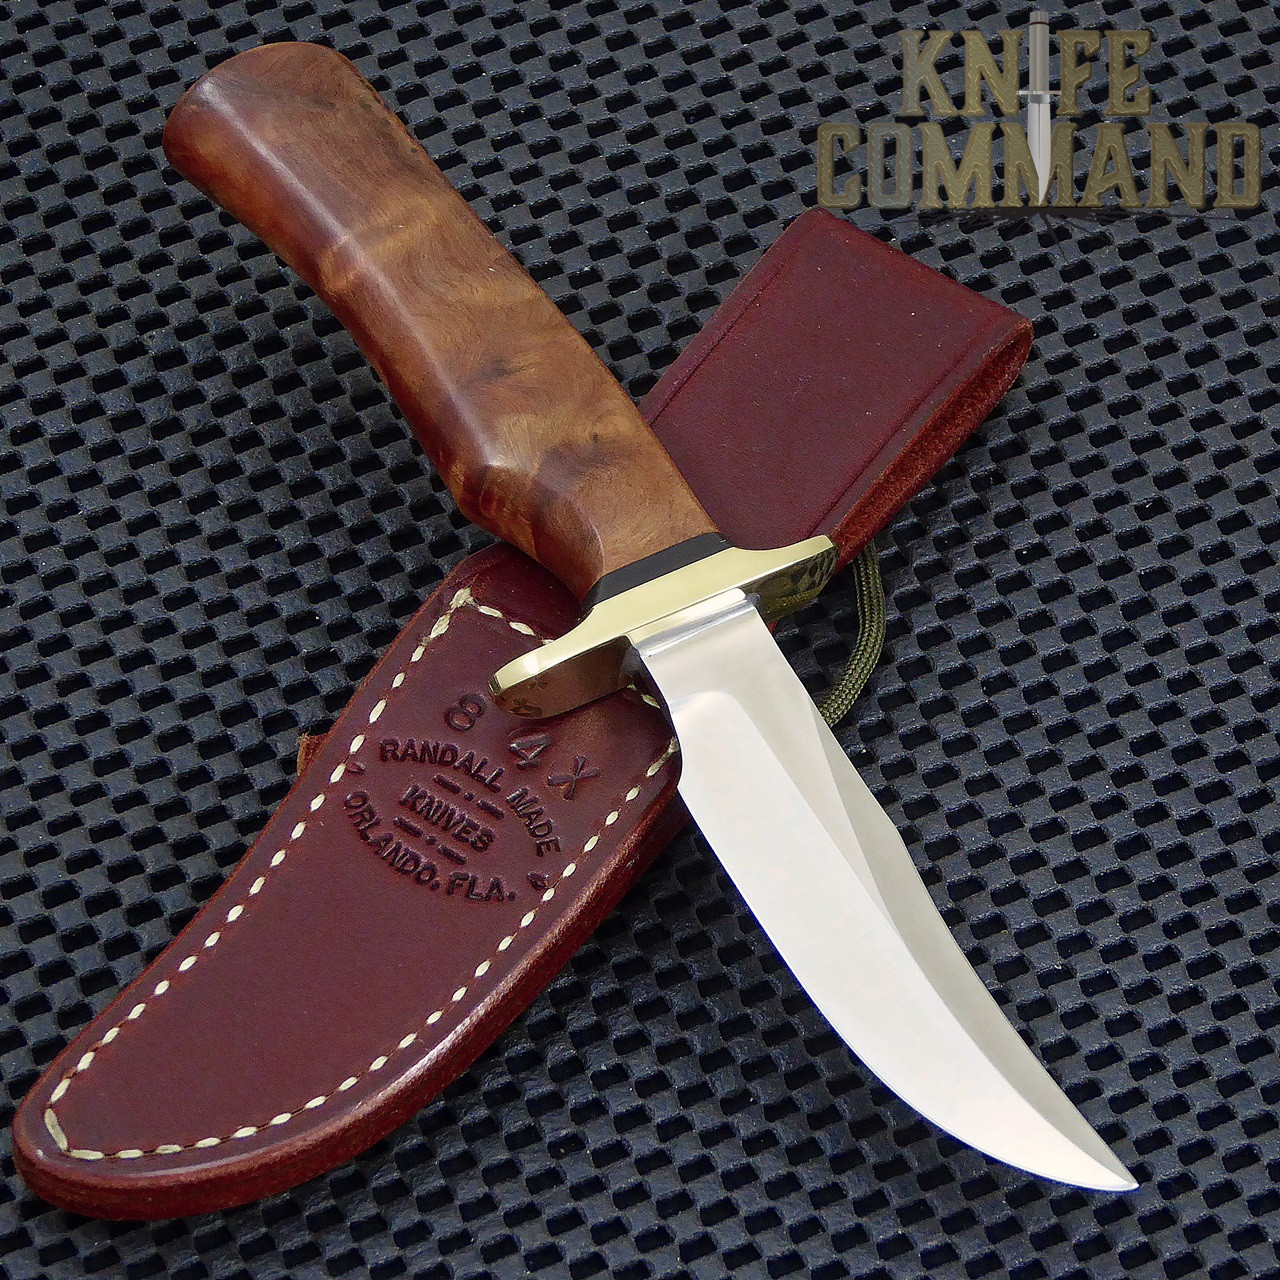 Randall Made Knives Model 8-4X Old Style Bird and Trout Thuya Fighter Style Knife.  Single finger grip and a double hilt.